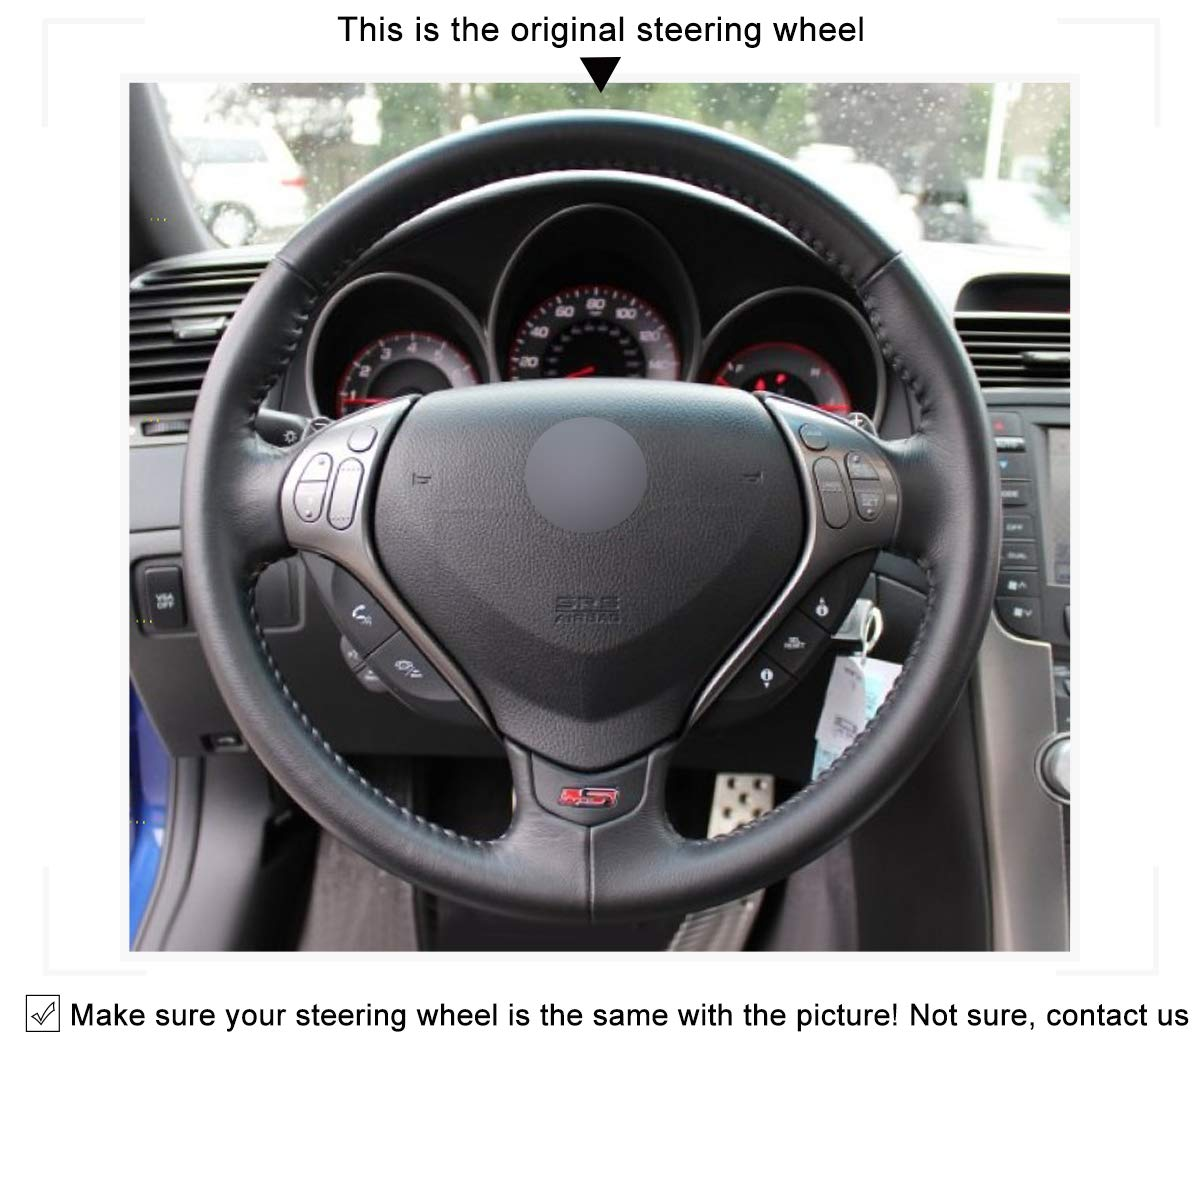 MEWANT Handsewing Black Artificial Leather Steering Wheel Cover Wrap for Acura TL 2007 TL Type-s 2007 Accessories Protector Automotive Interior